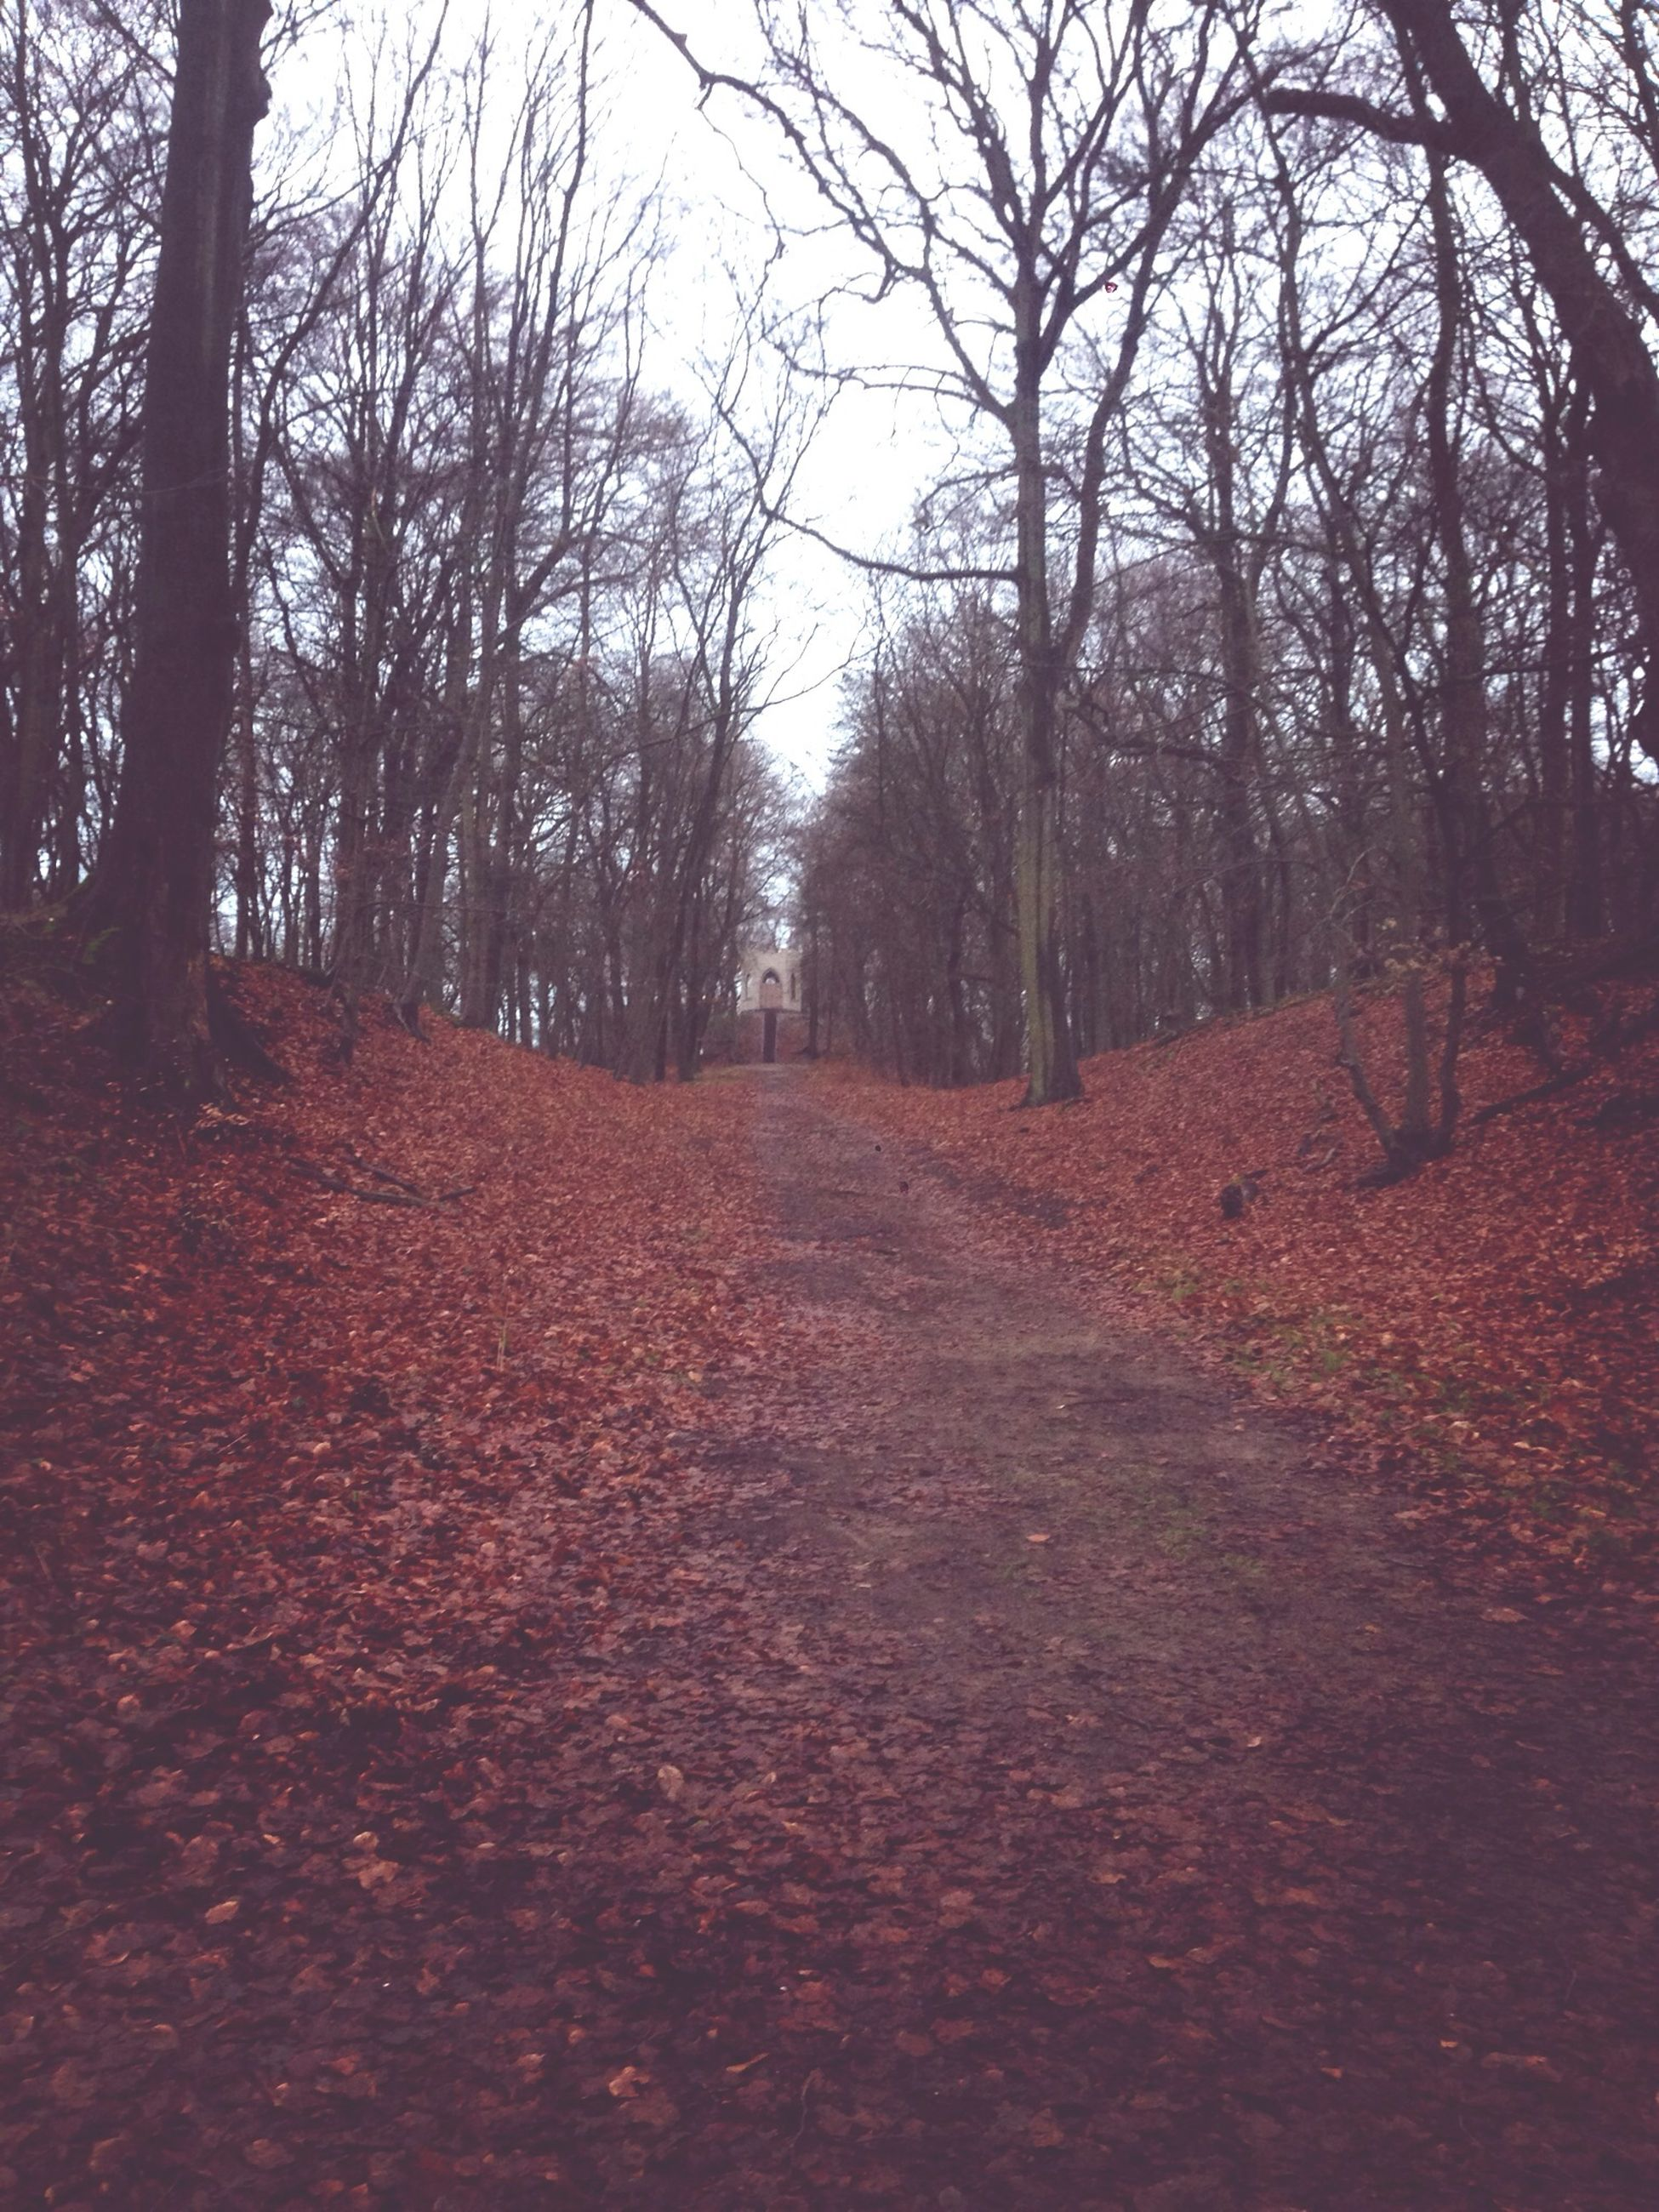 tree, tranquility, tranquil scene, the way forward, autumn, bare tree, nature, landscape, scenics, beauty in nature, forest, change, dirt road, branch, tree trunk, growth, non-urban scene, season, diminishing perspective, outdoors